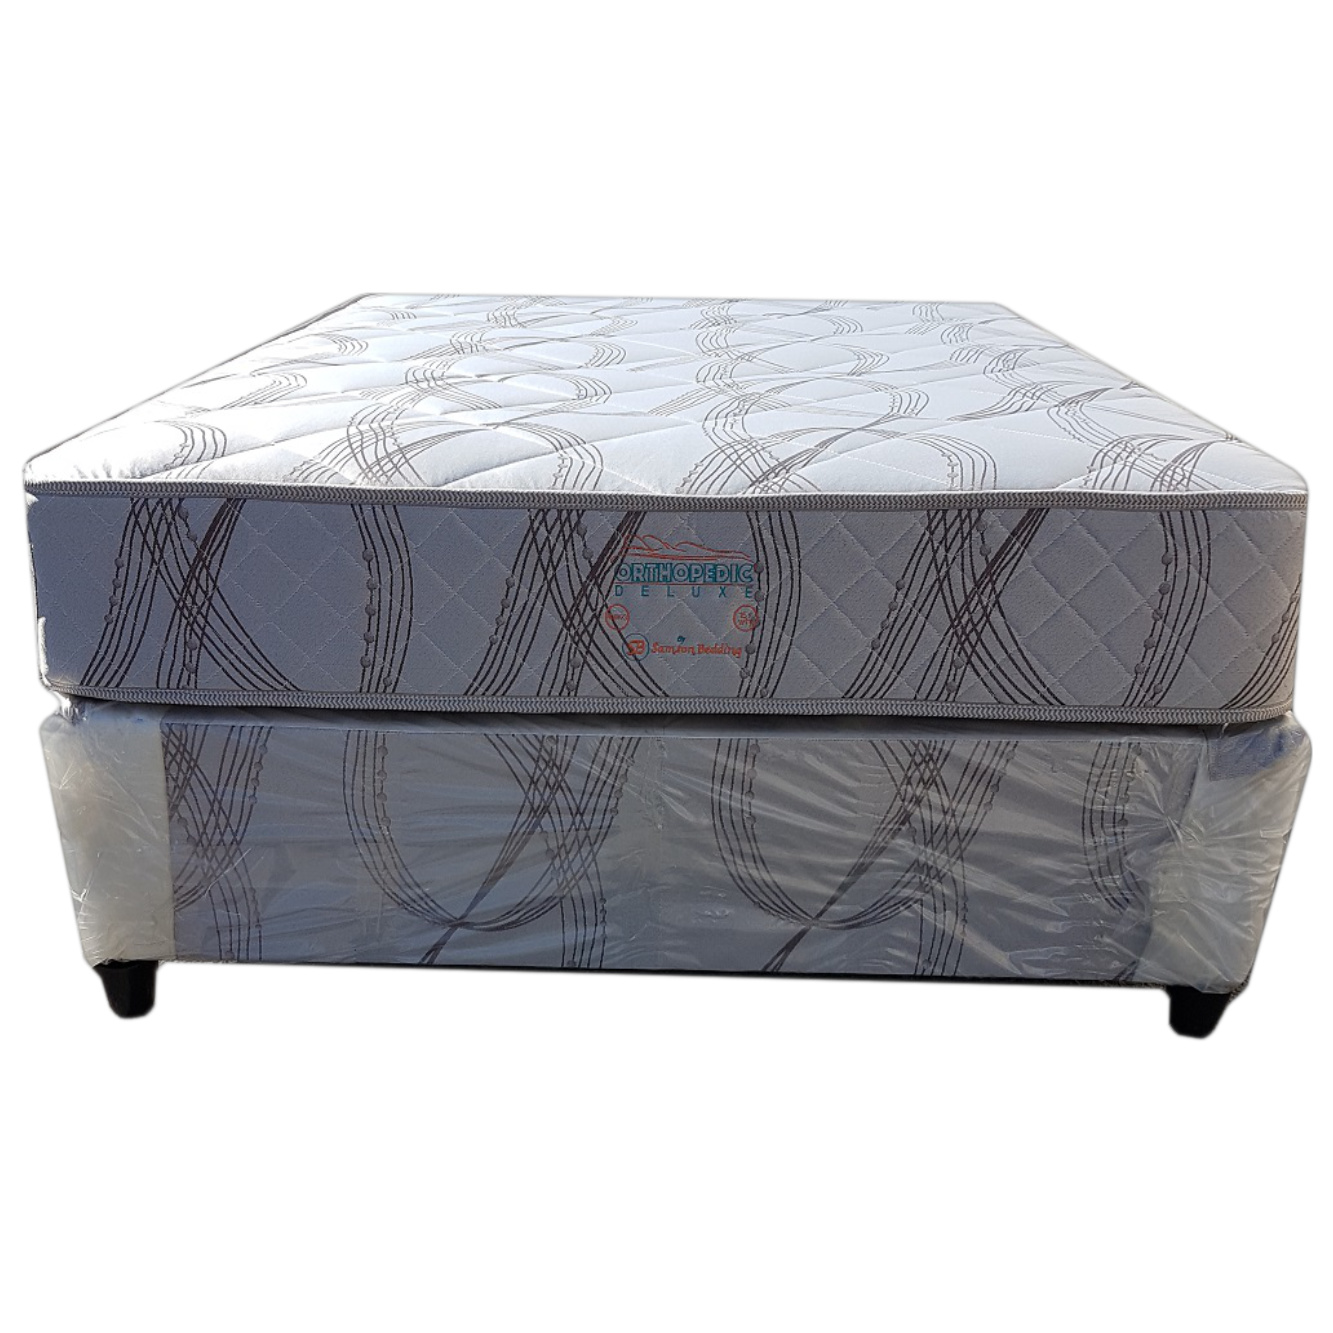 Orthopaedic Deluxe Bed Beds And More